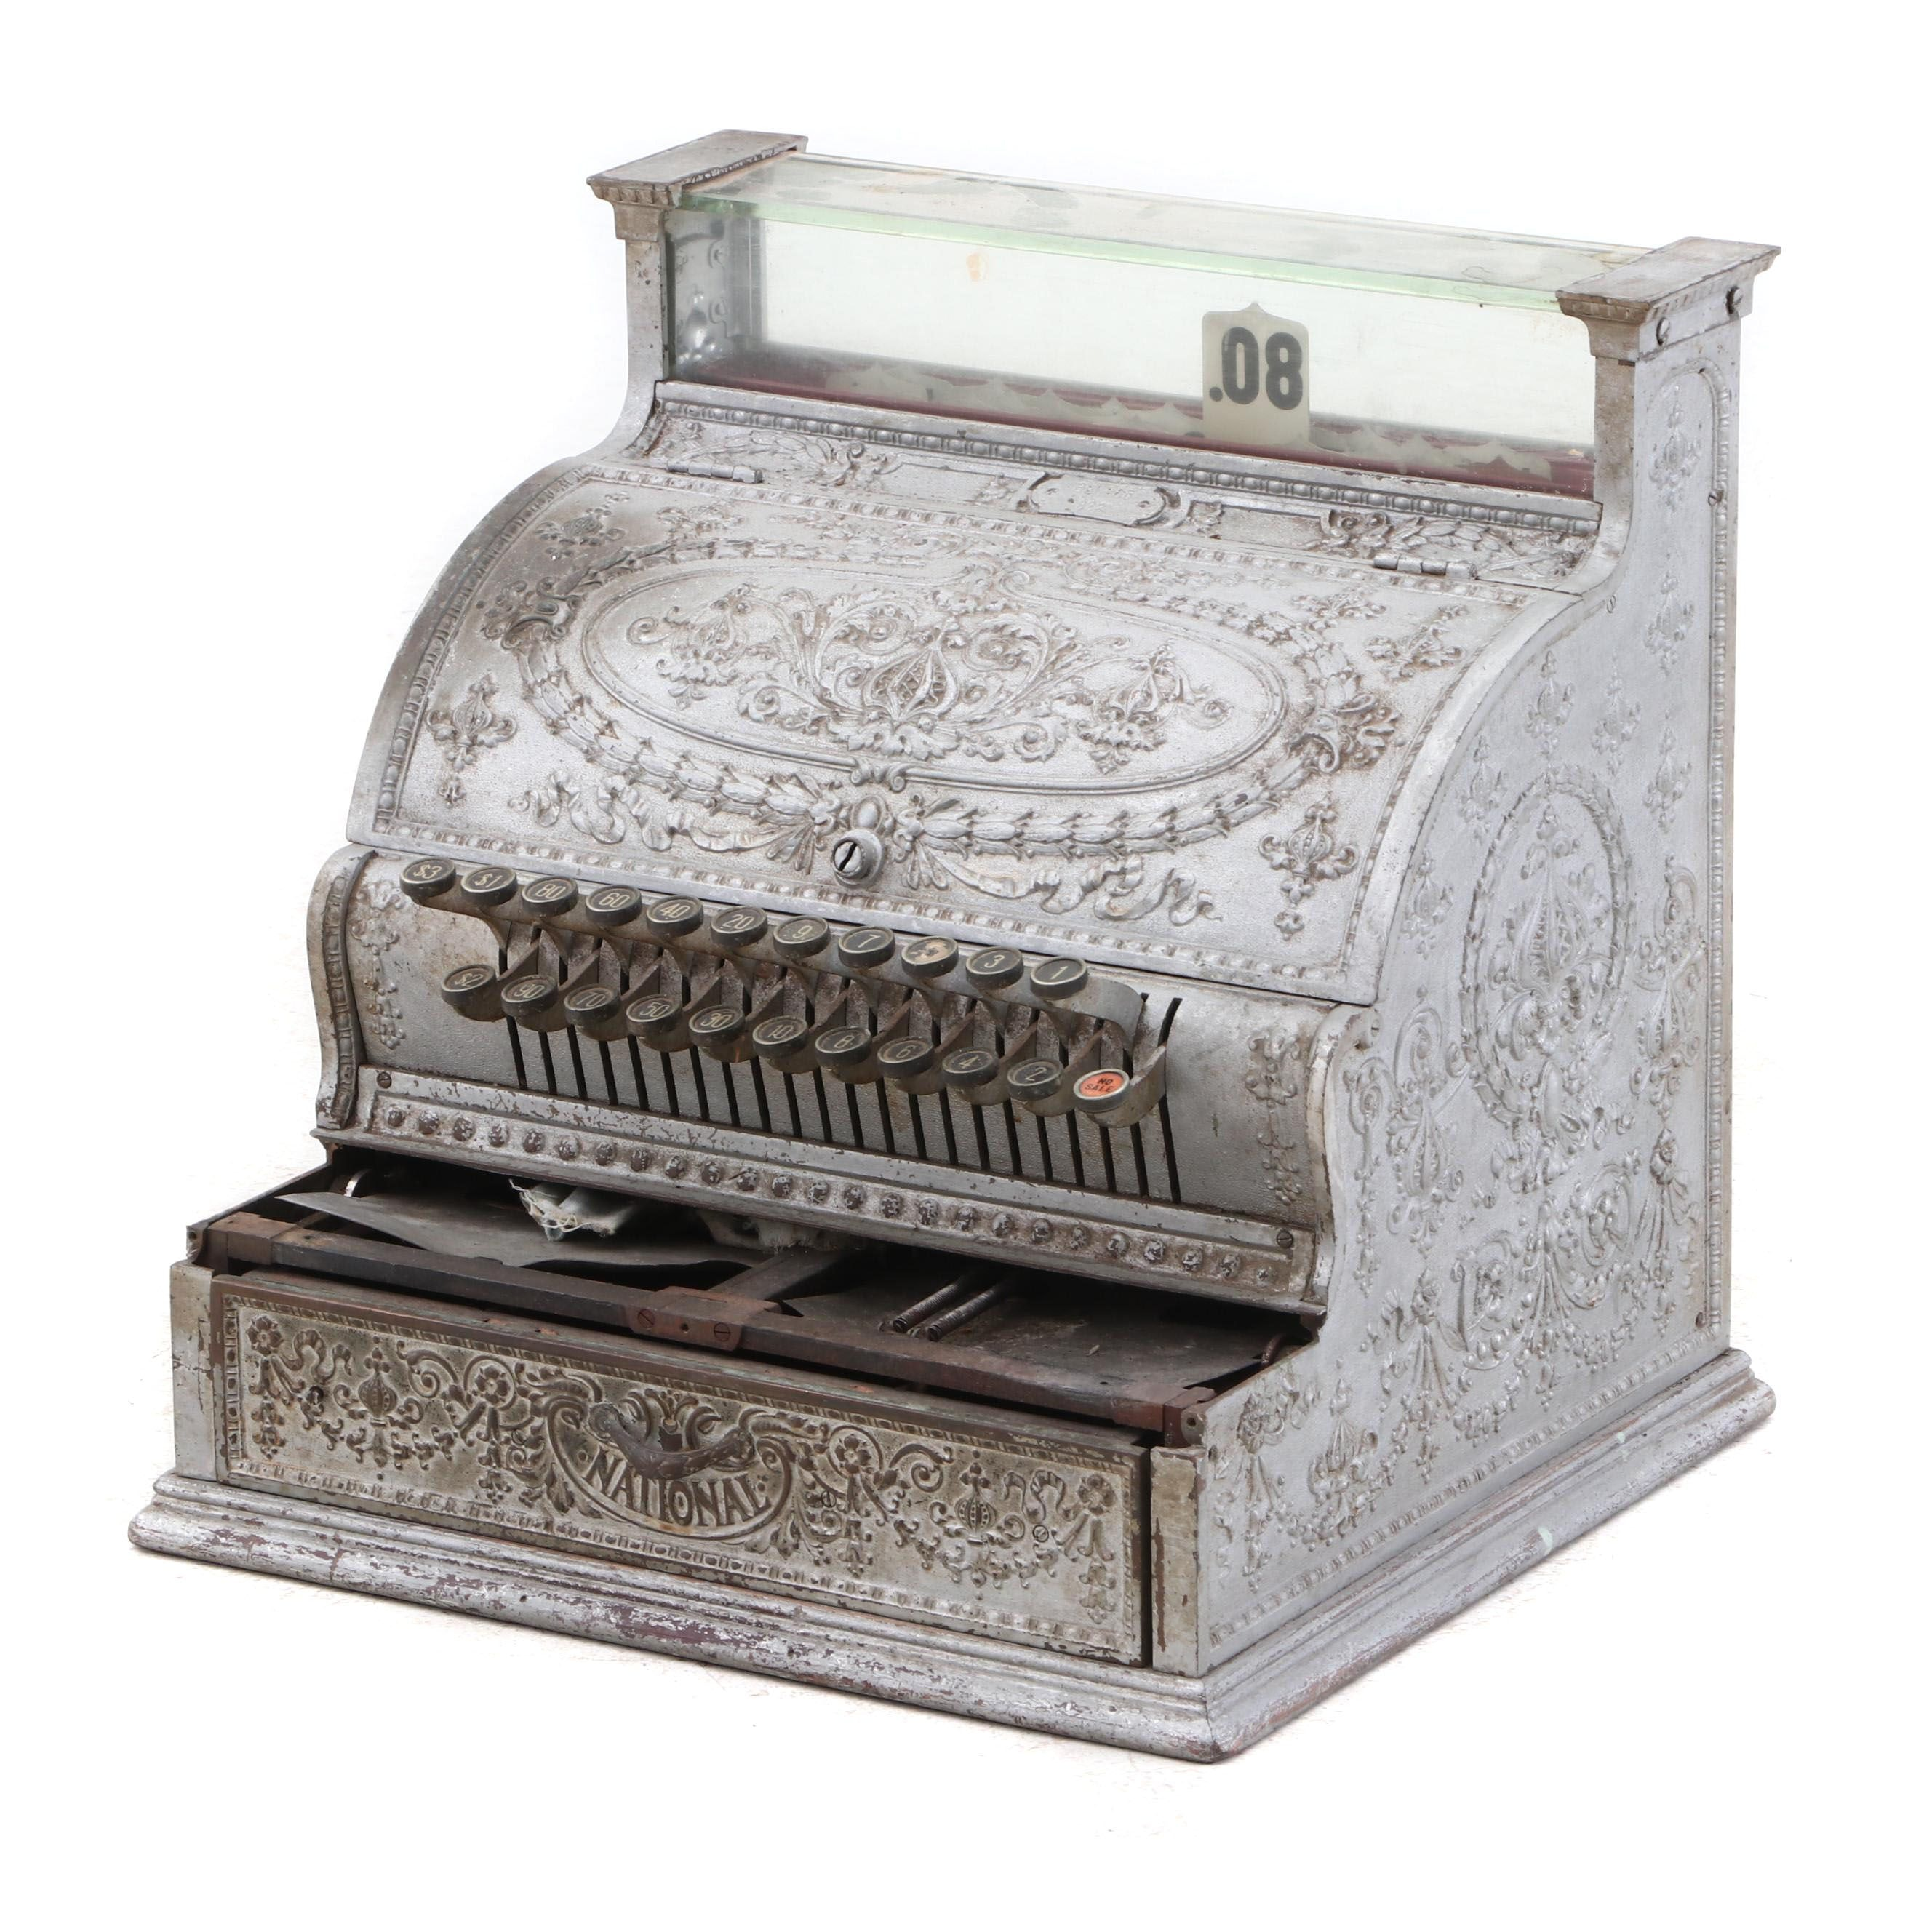 Antique Iron National Cash Register No. 332, Circa 1910